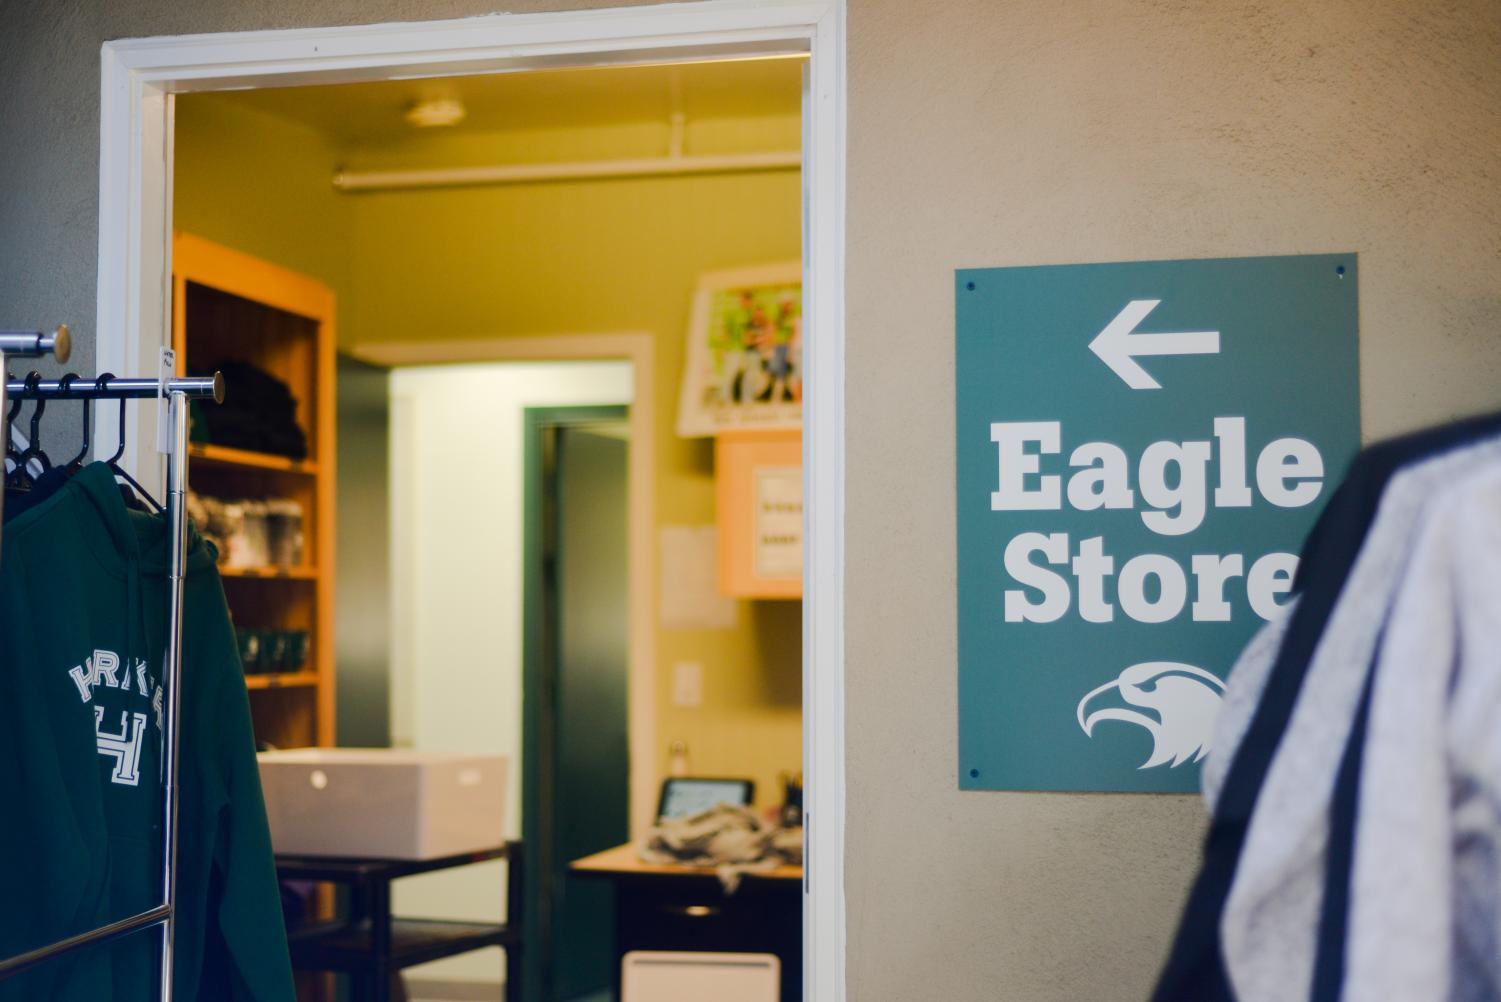 The Saratoga campus Eagle Store. The store opened yesterday and contains a selection of Harker merchandise for purchase.